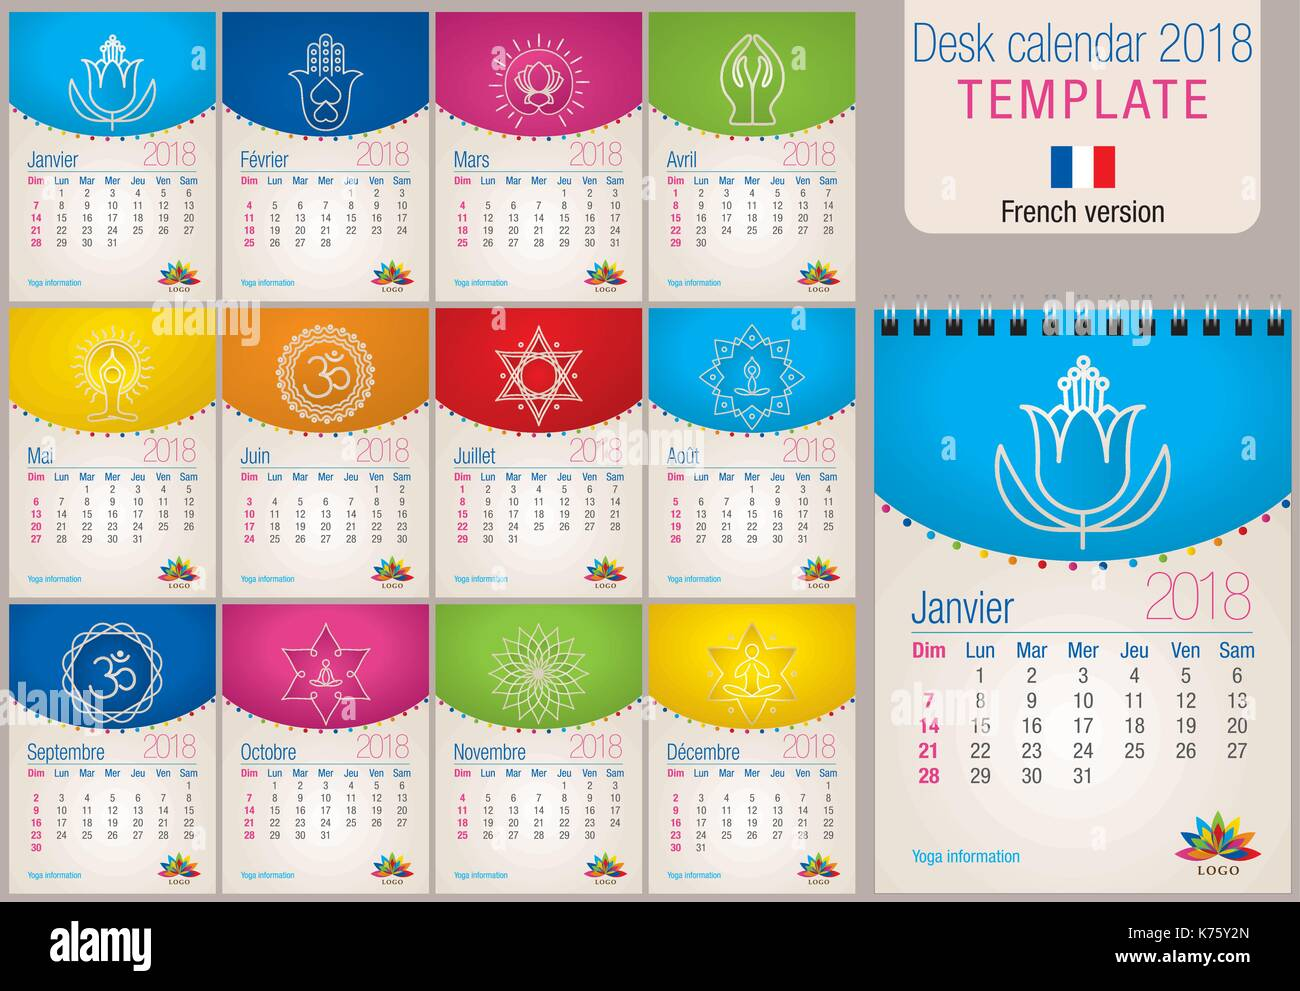 Useful Desk Calendar 2018 Colorful Template With Yoga And